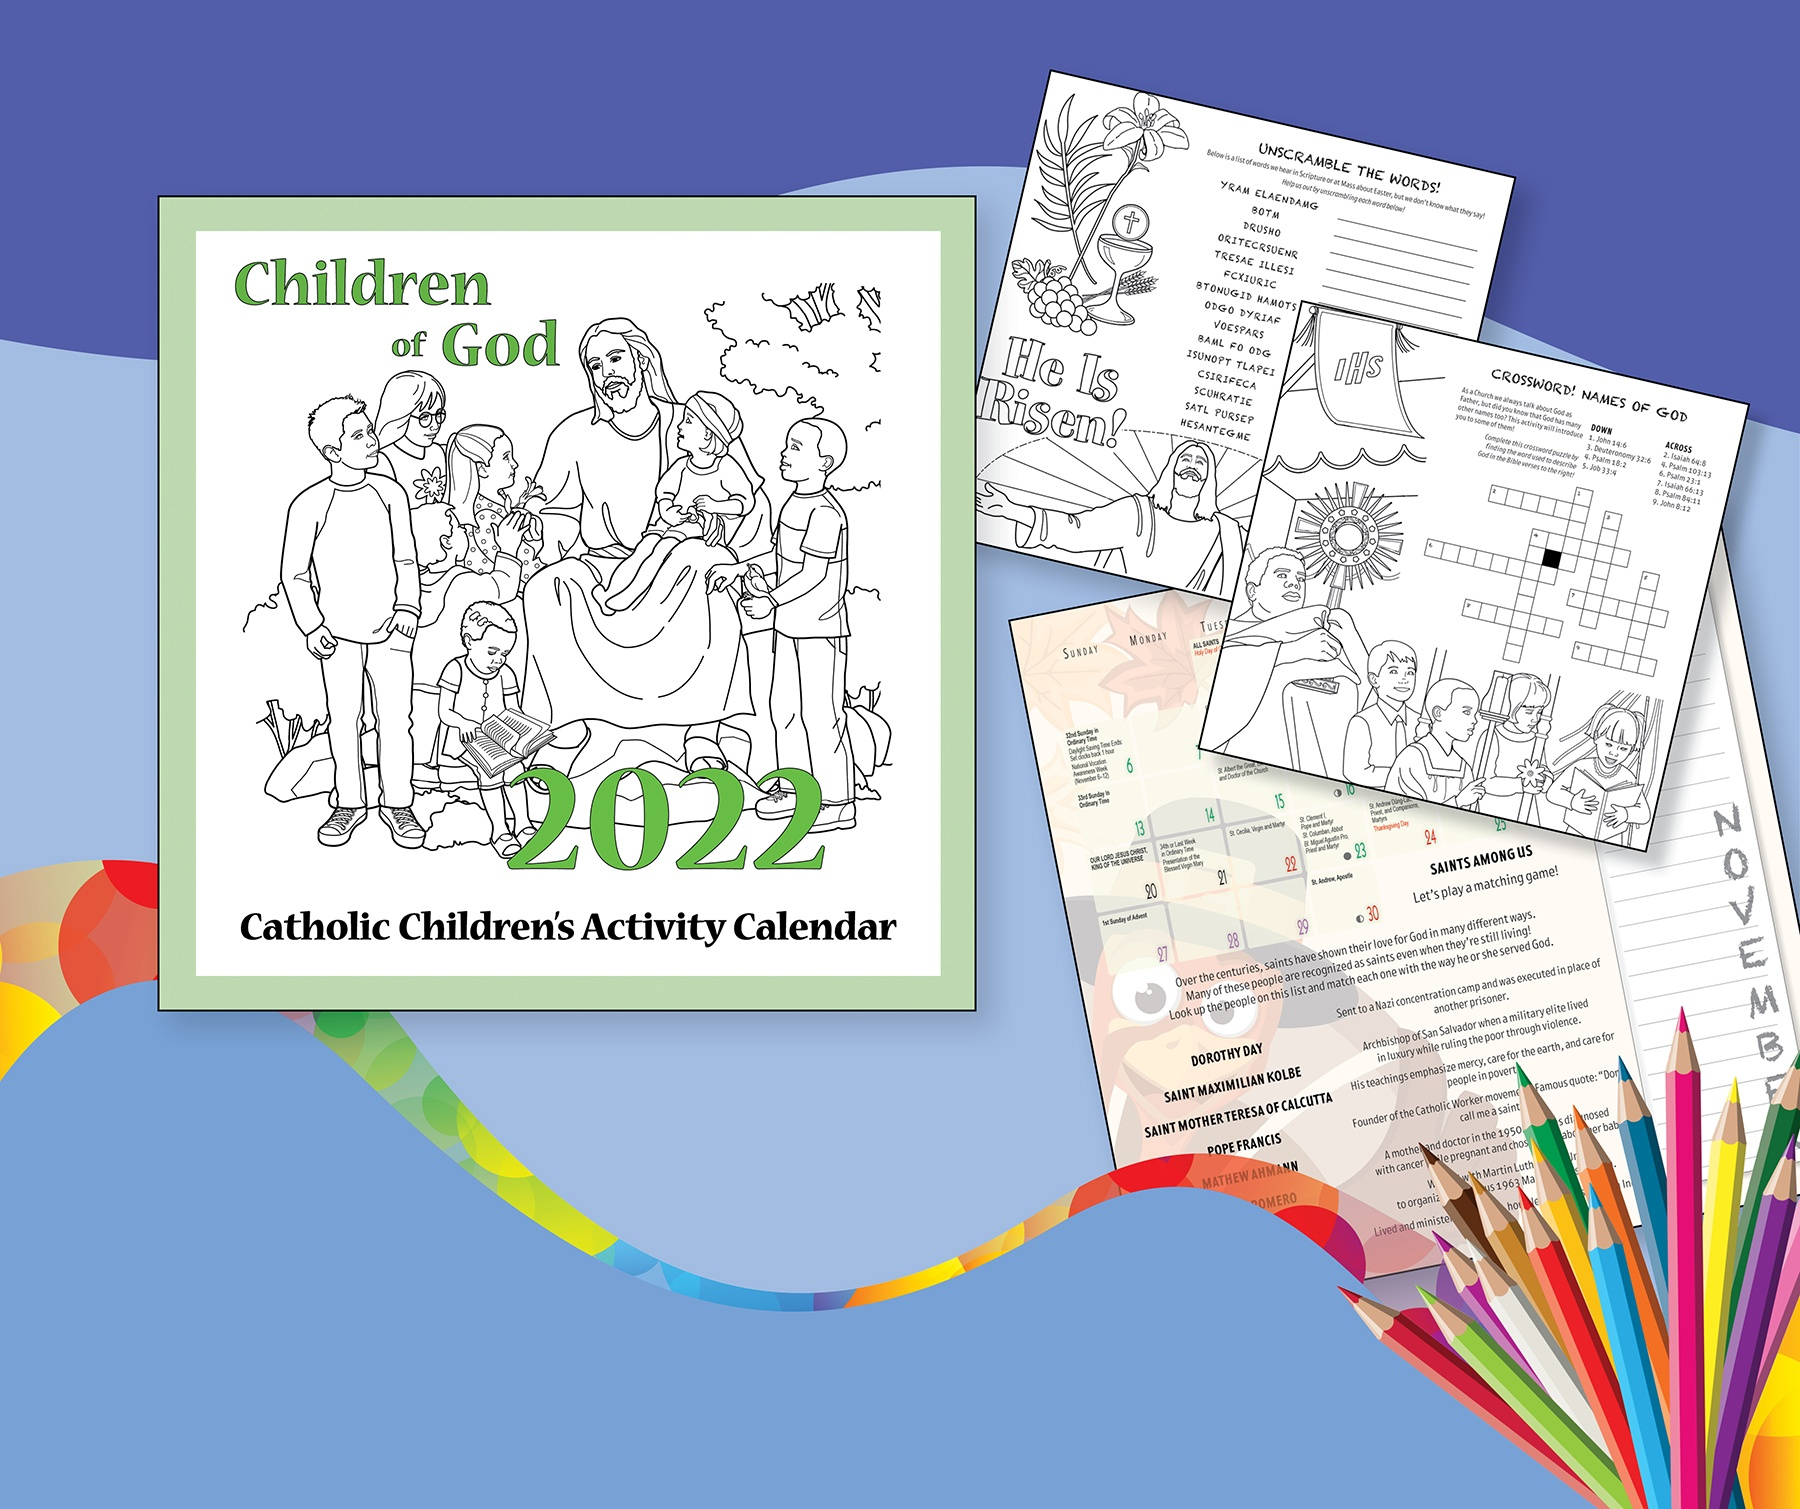 Fun and faith-filled calendar for children and families!